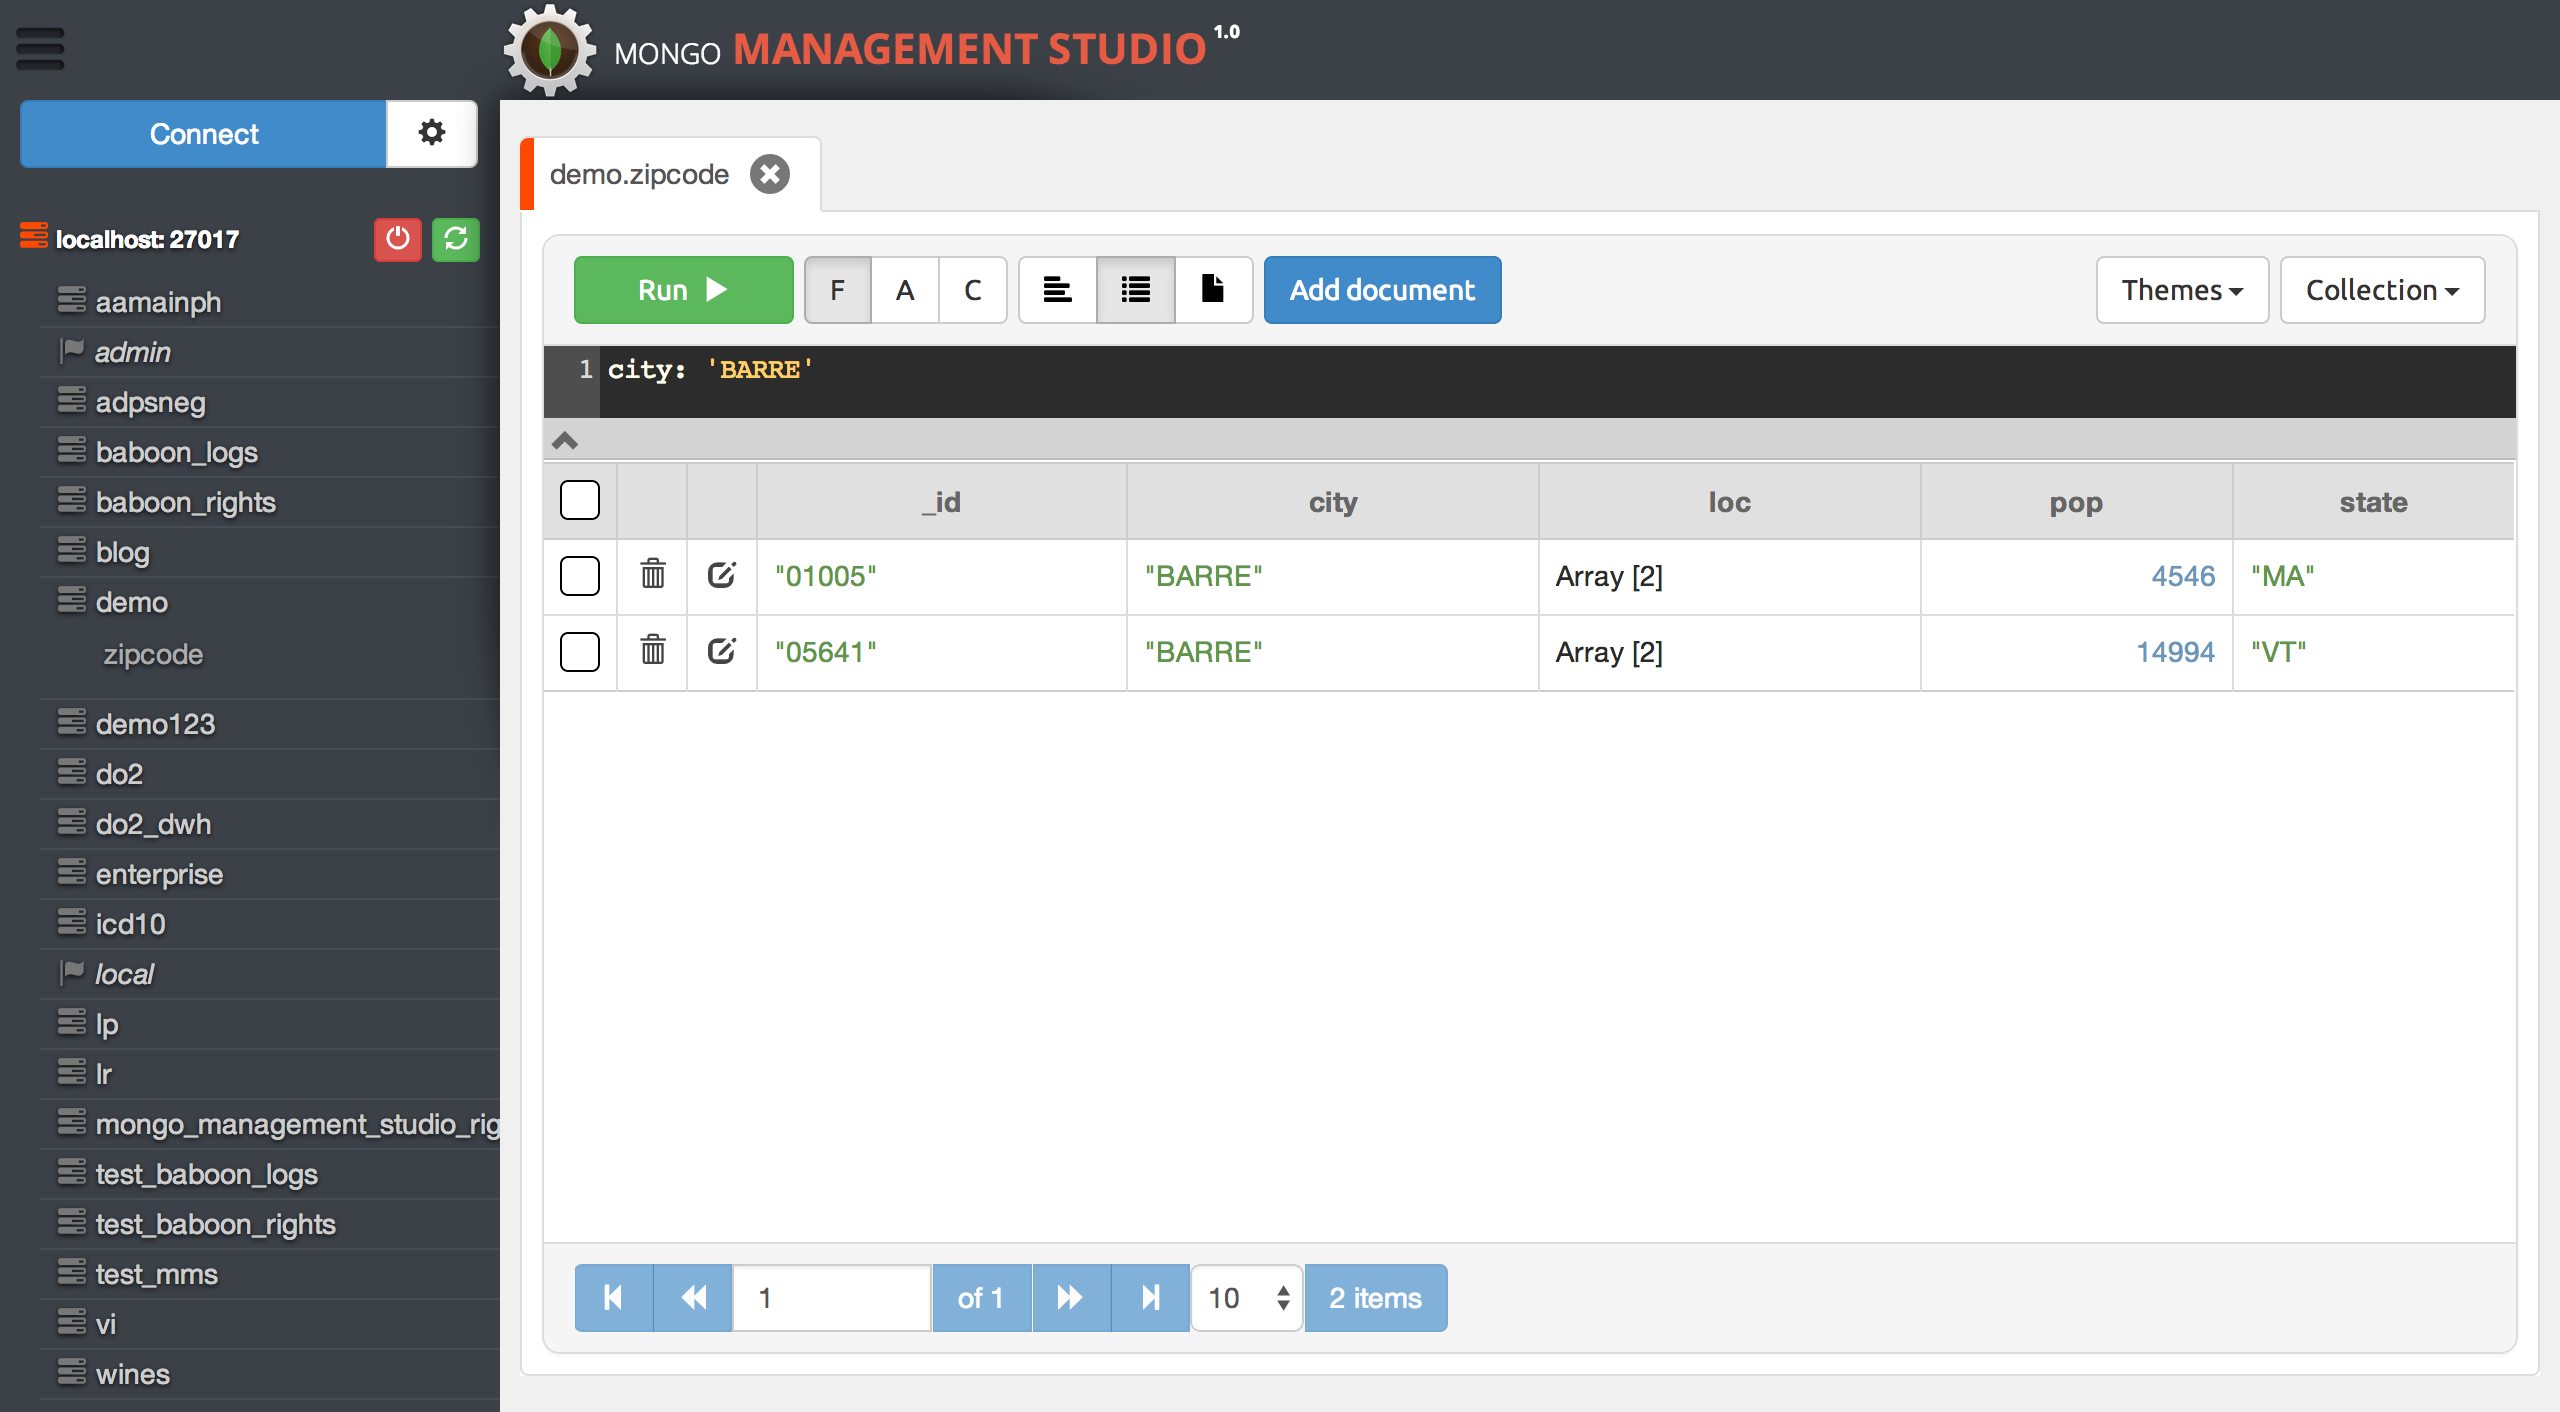 mongodb-management-eco-visualization-tools-12